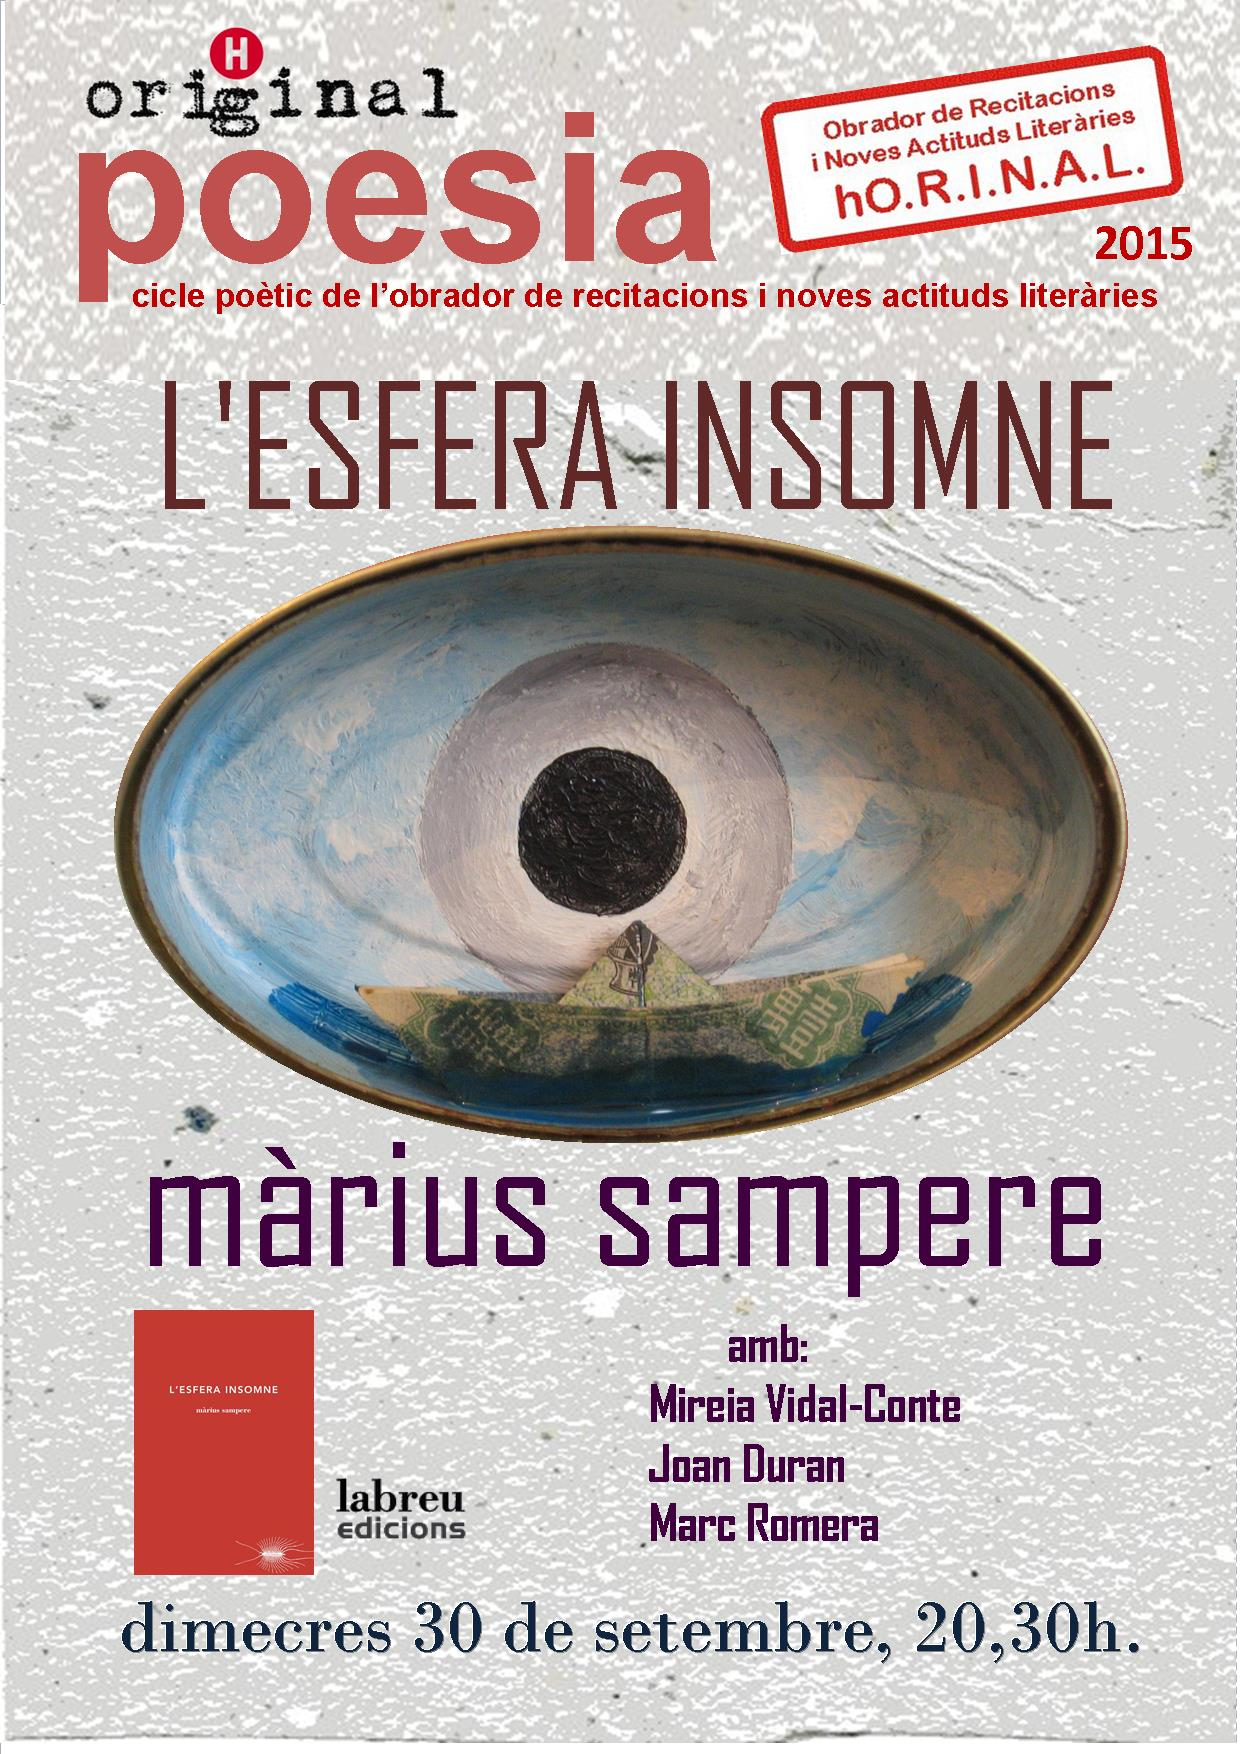 sampere cartell